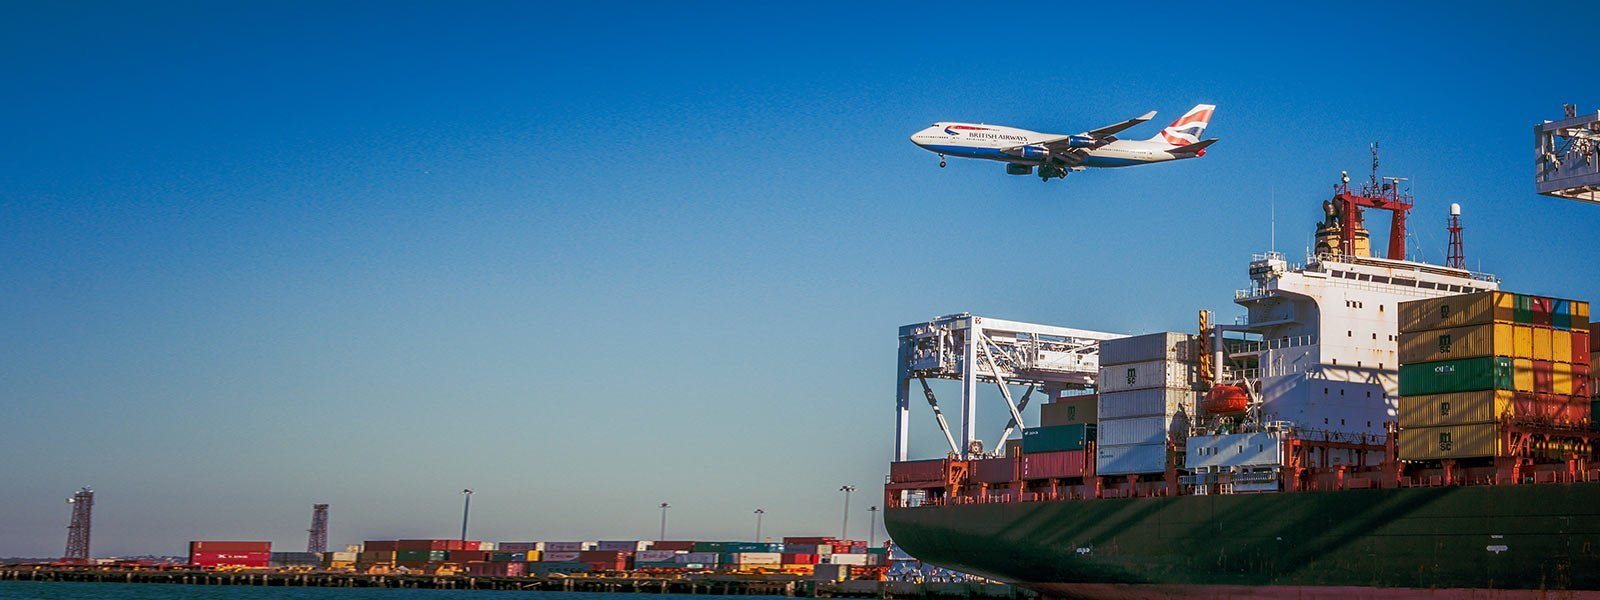 plane flying over container ship with containers in the background